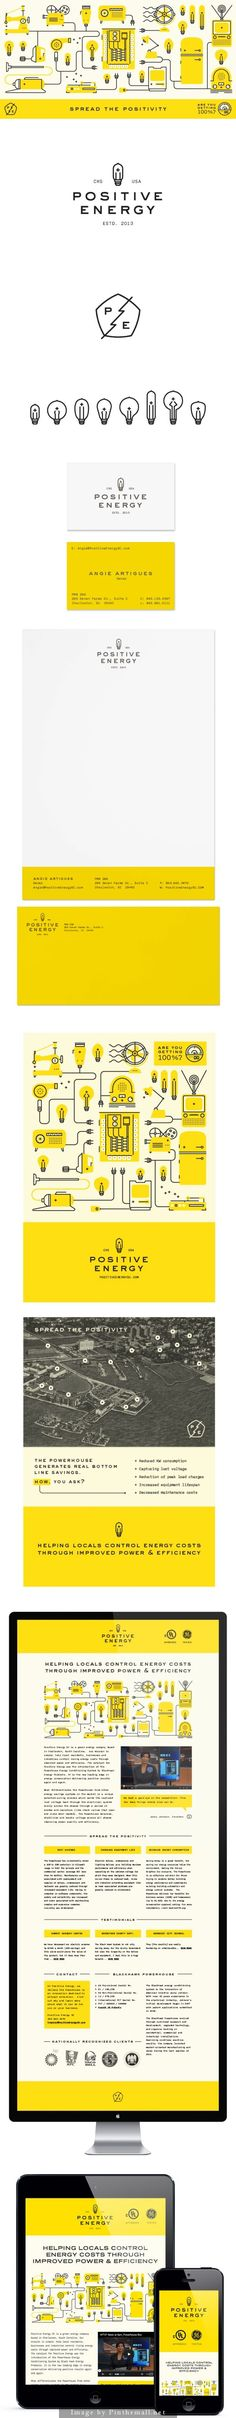 Branding for Positive Energy: Love the fun, modern and vibrant design. Great colour choice.